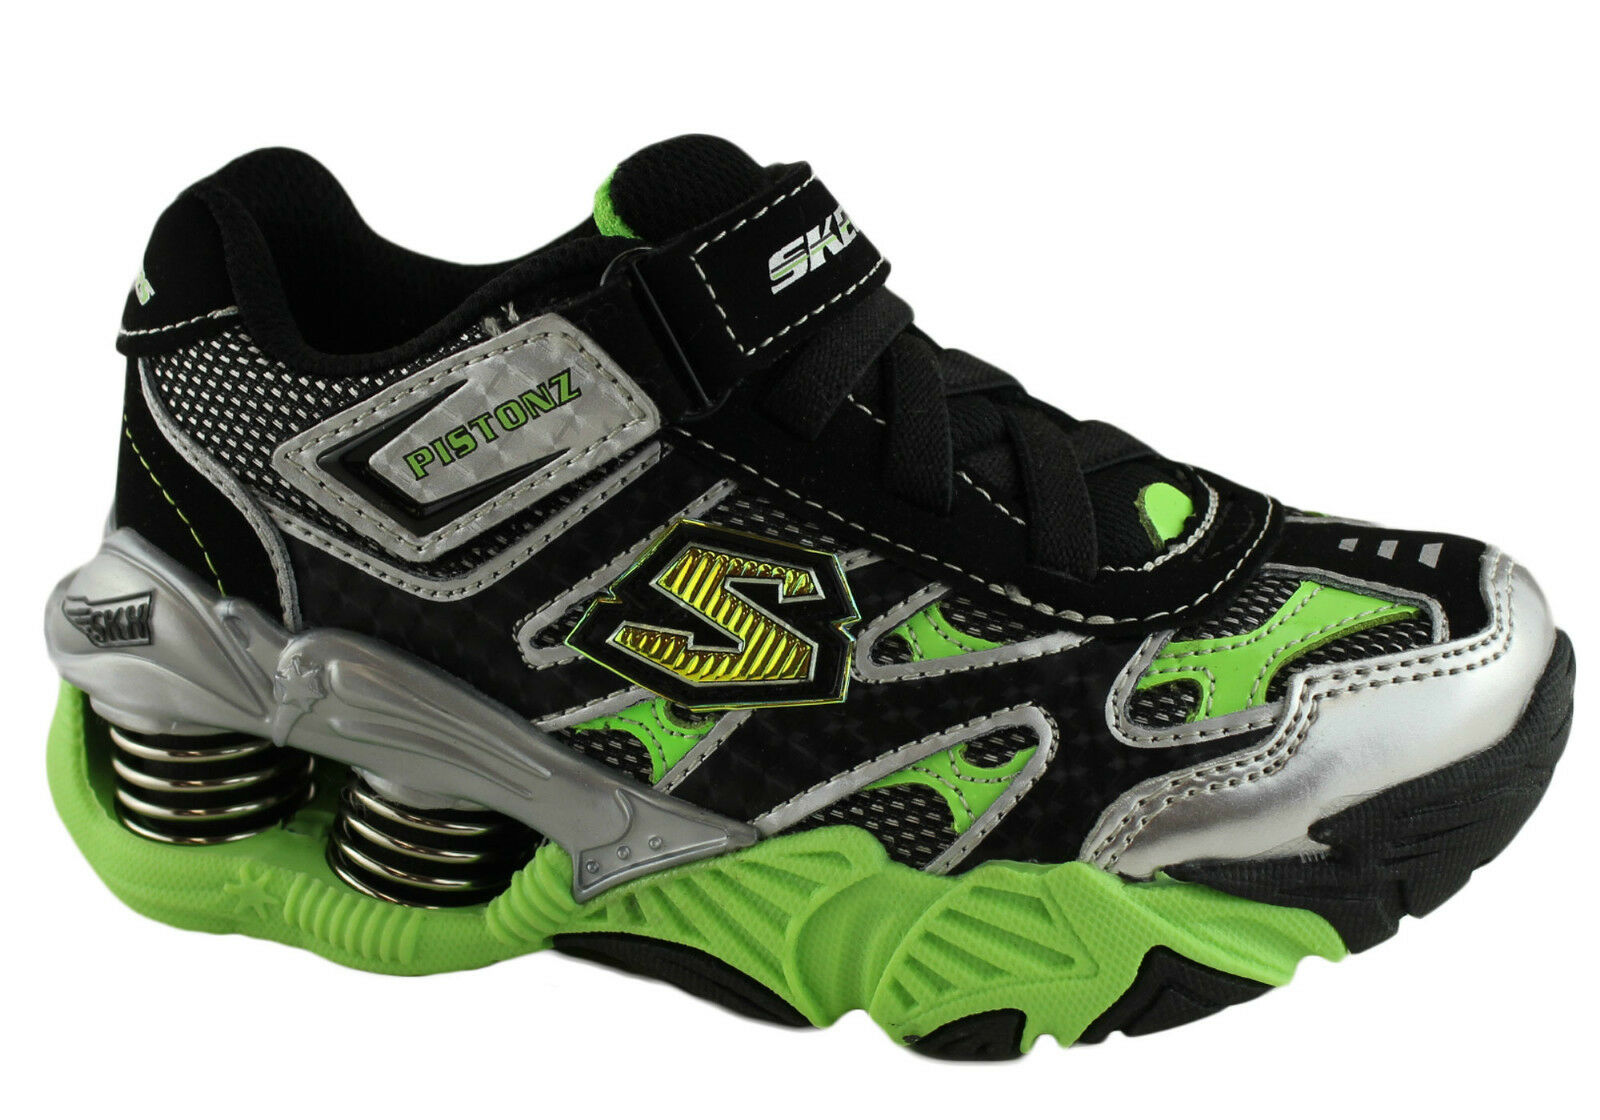 skechers shoes for boys. skechers shoes for boys c